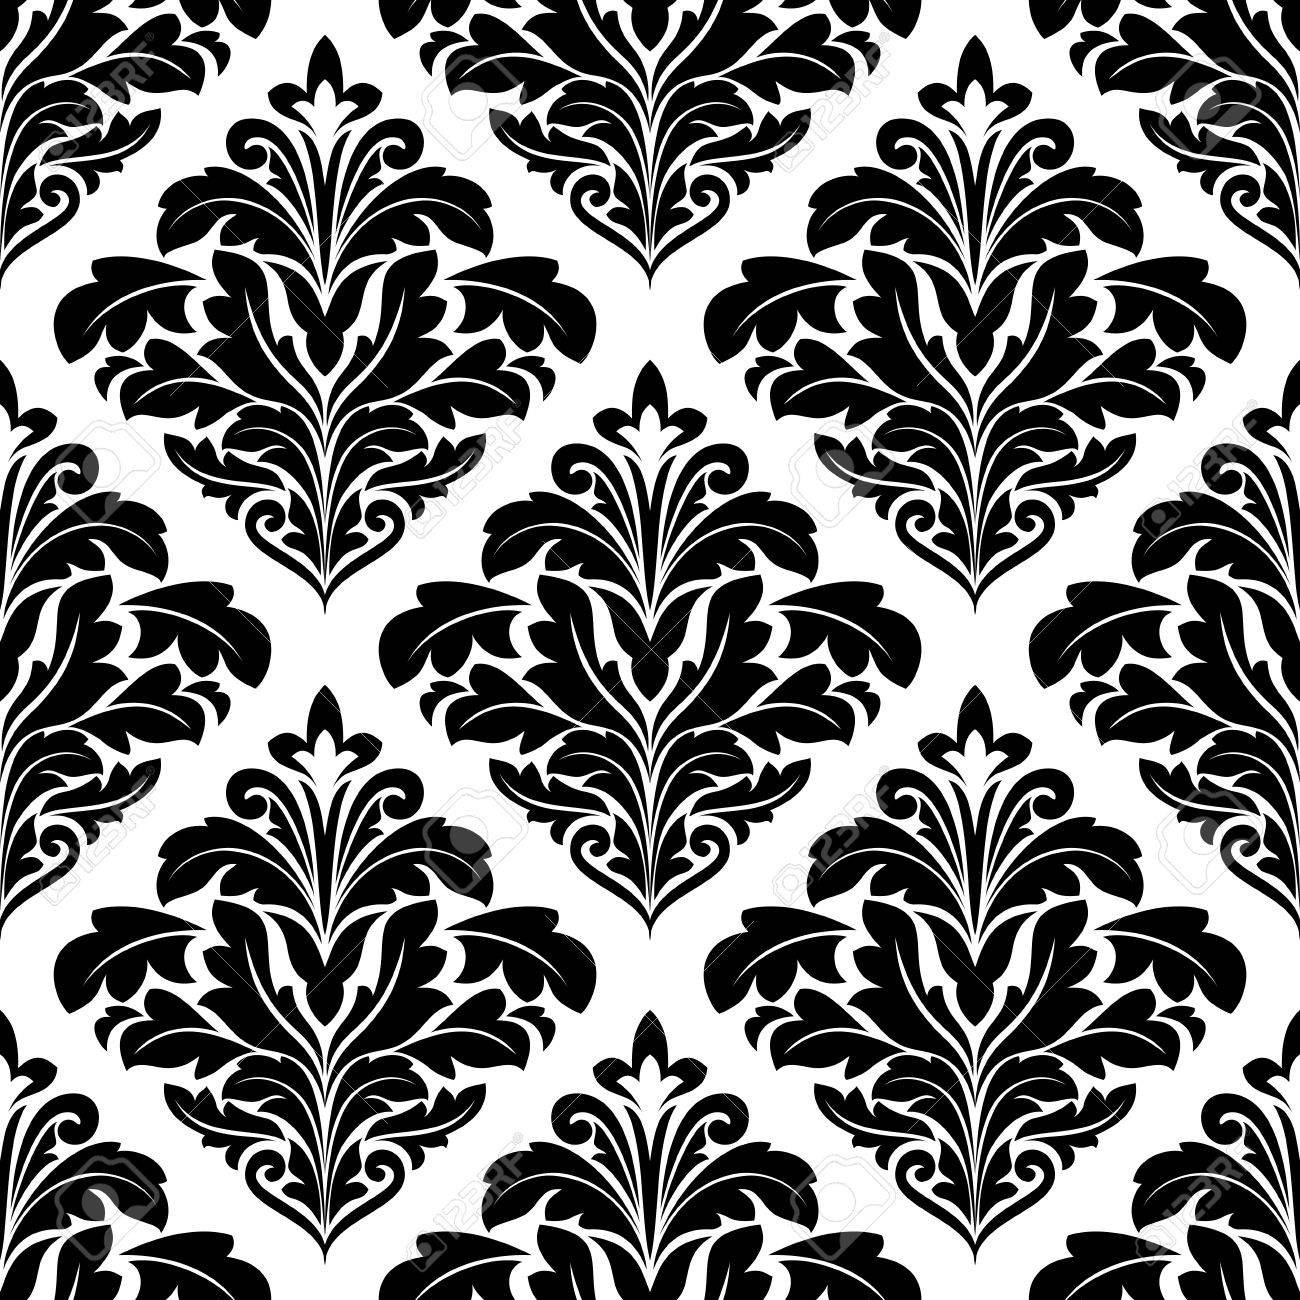 Bold Floral Arabesque Seamless Pattern With A Black Motif Arranged